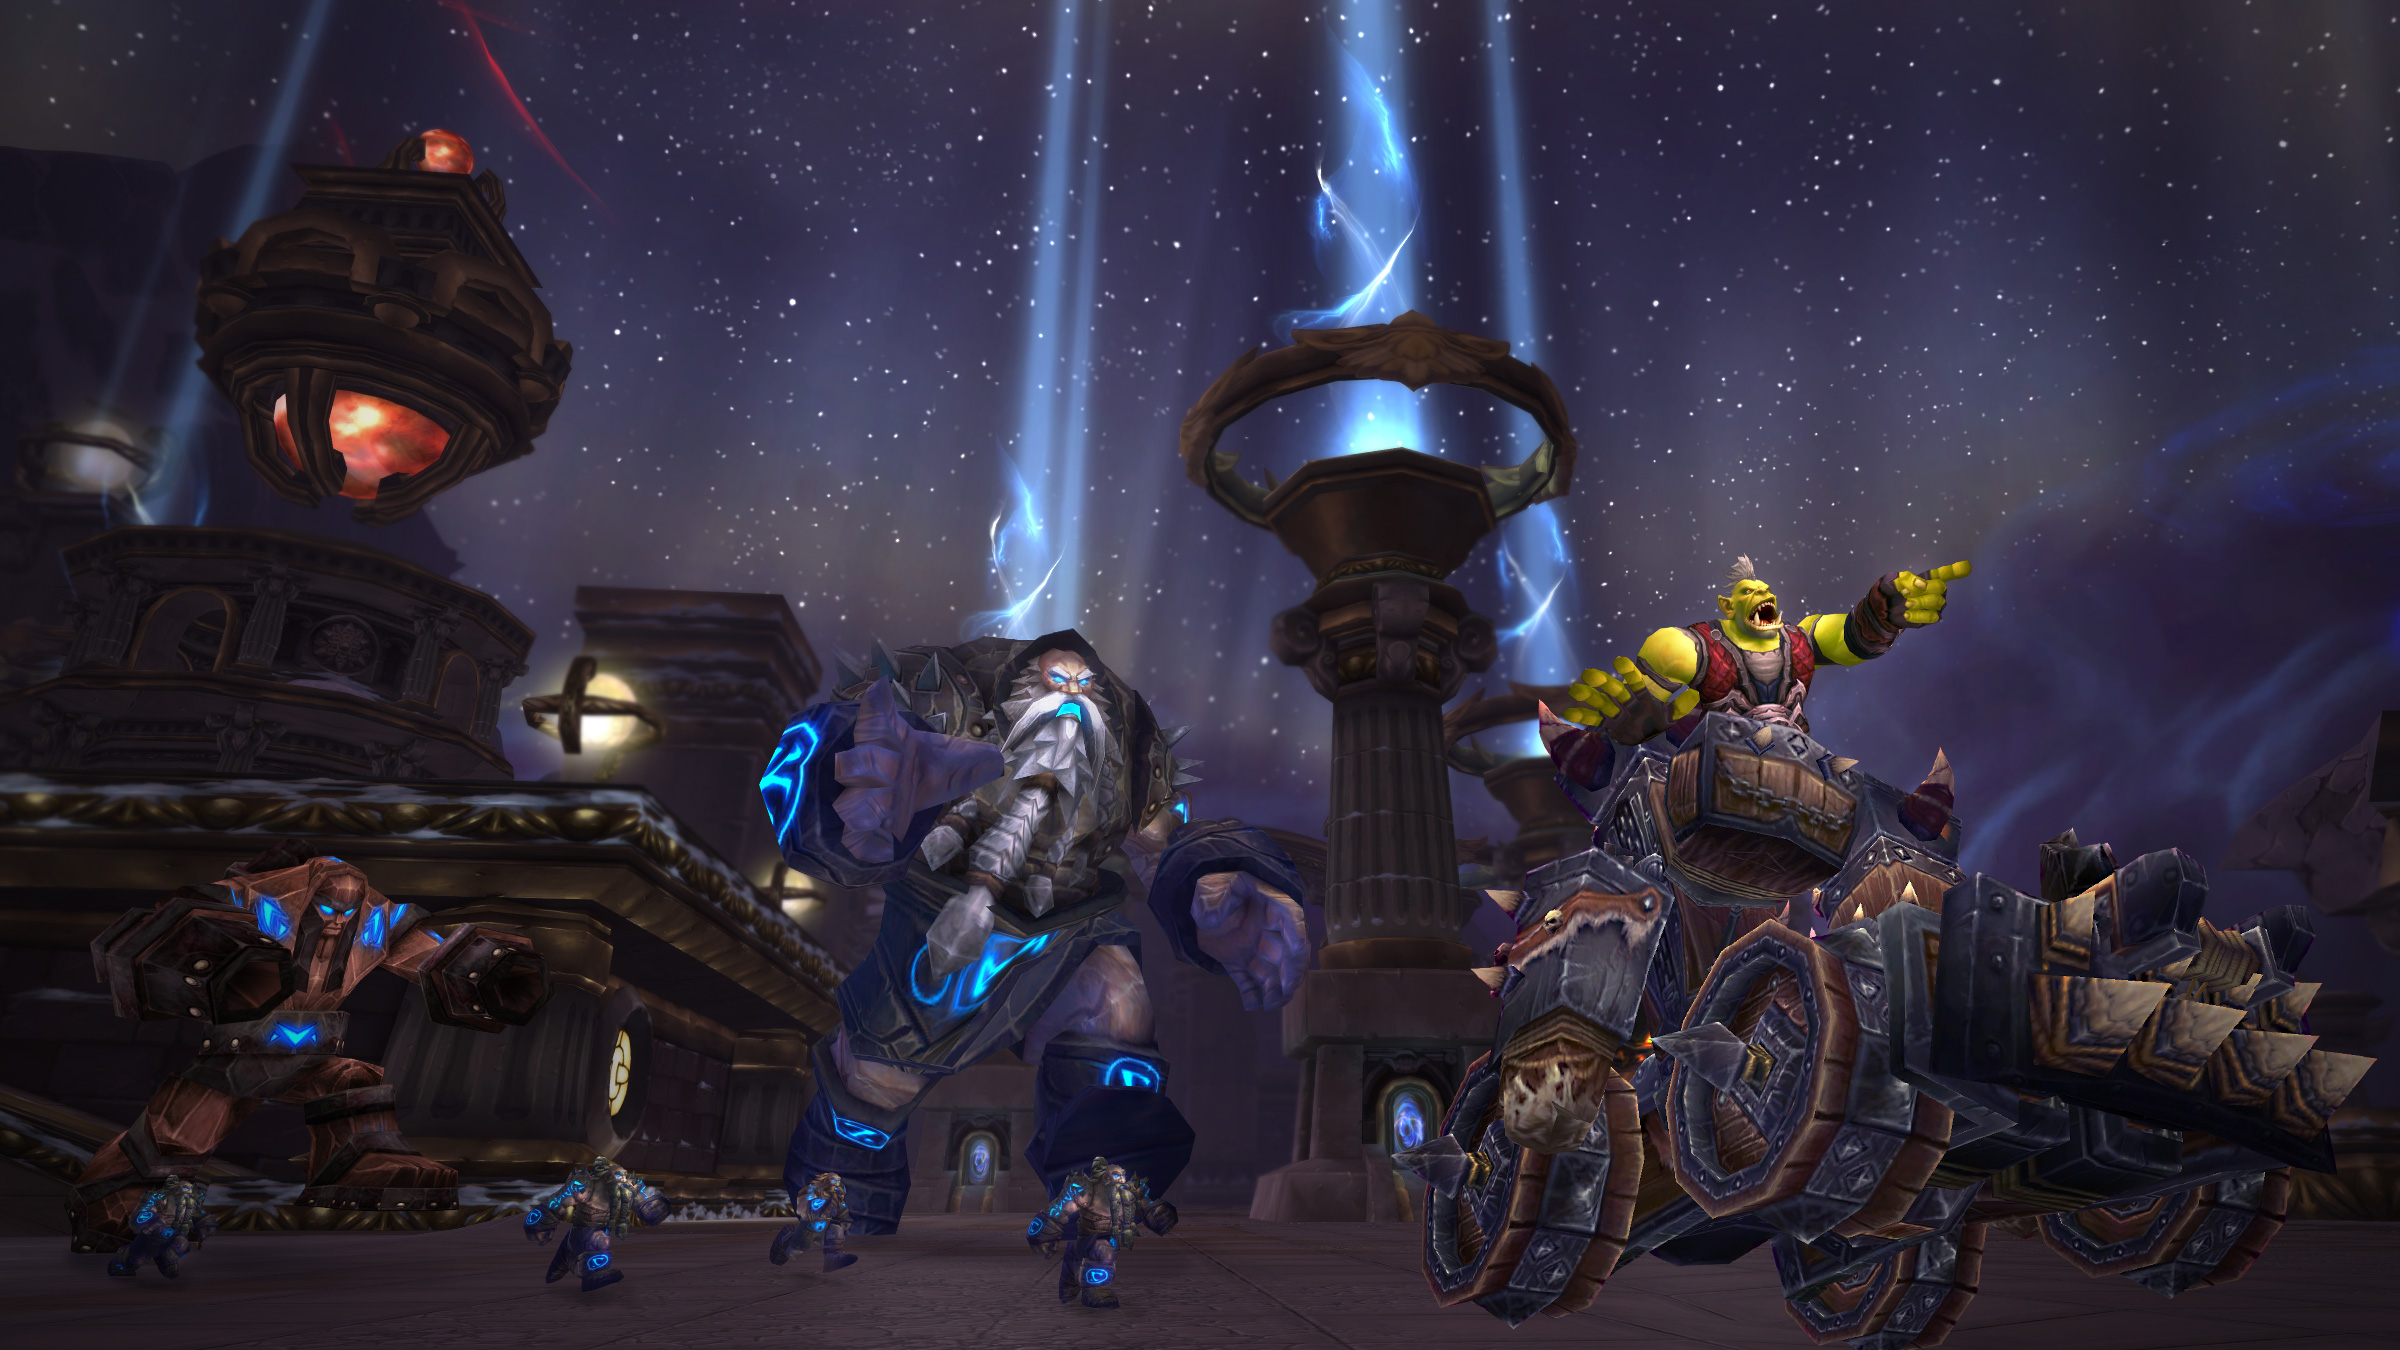 Du 1 au 8 juillet, revisitez les donjons de Wrath of the Lich King